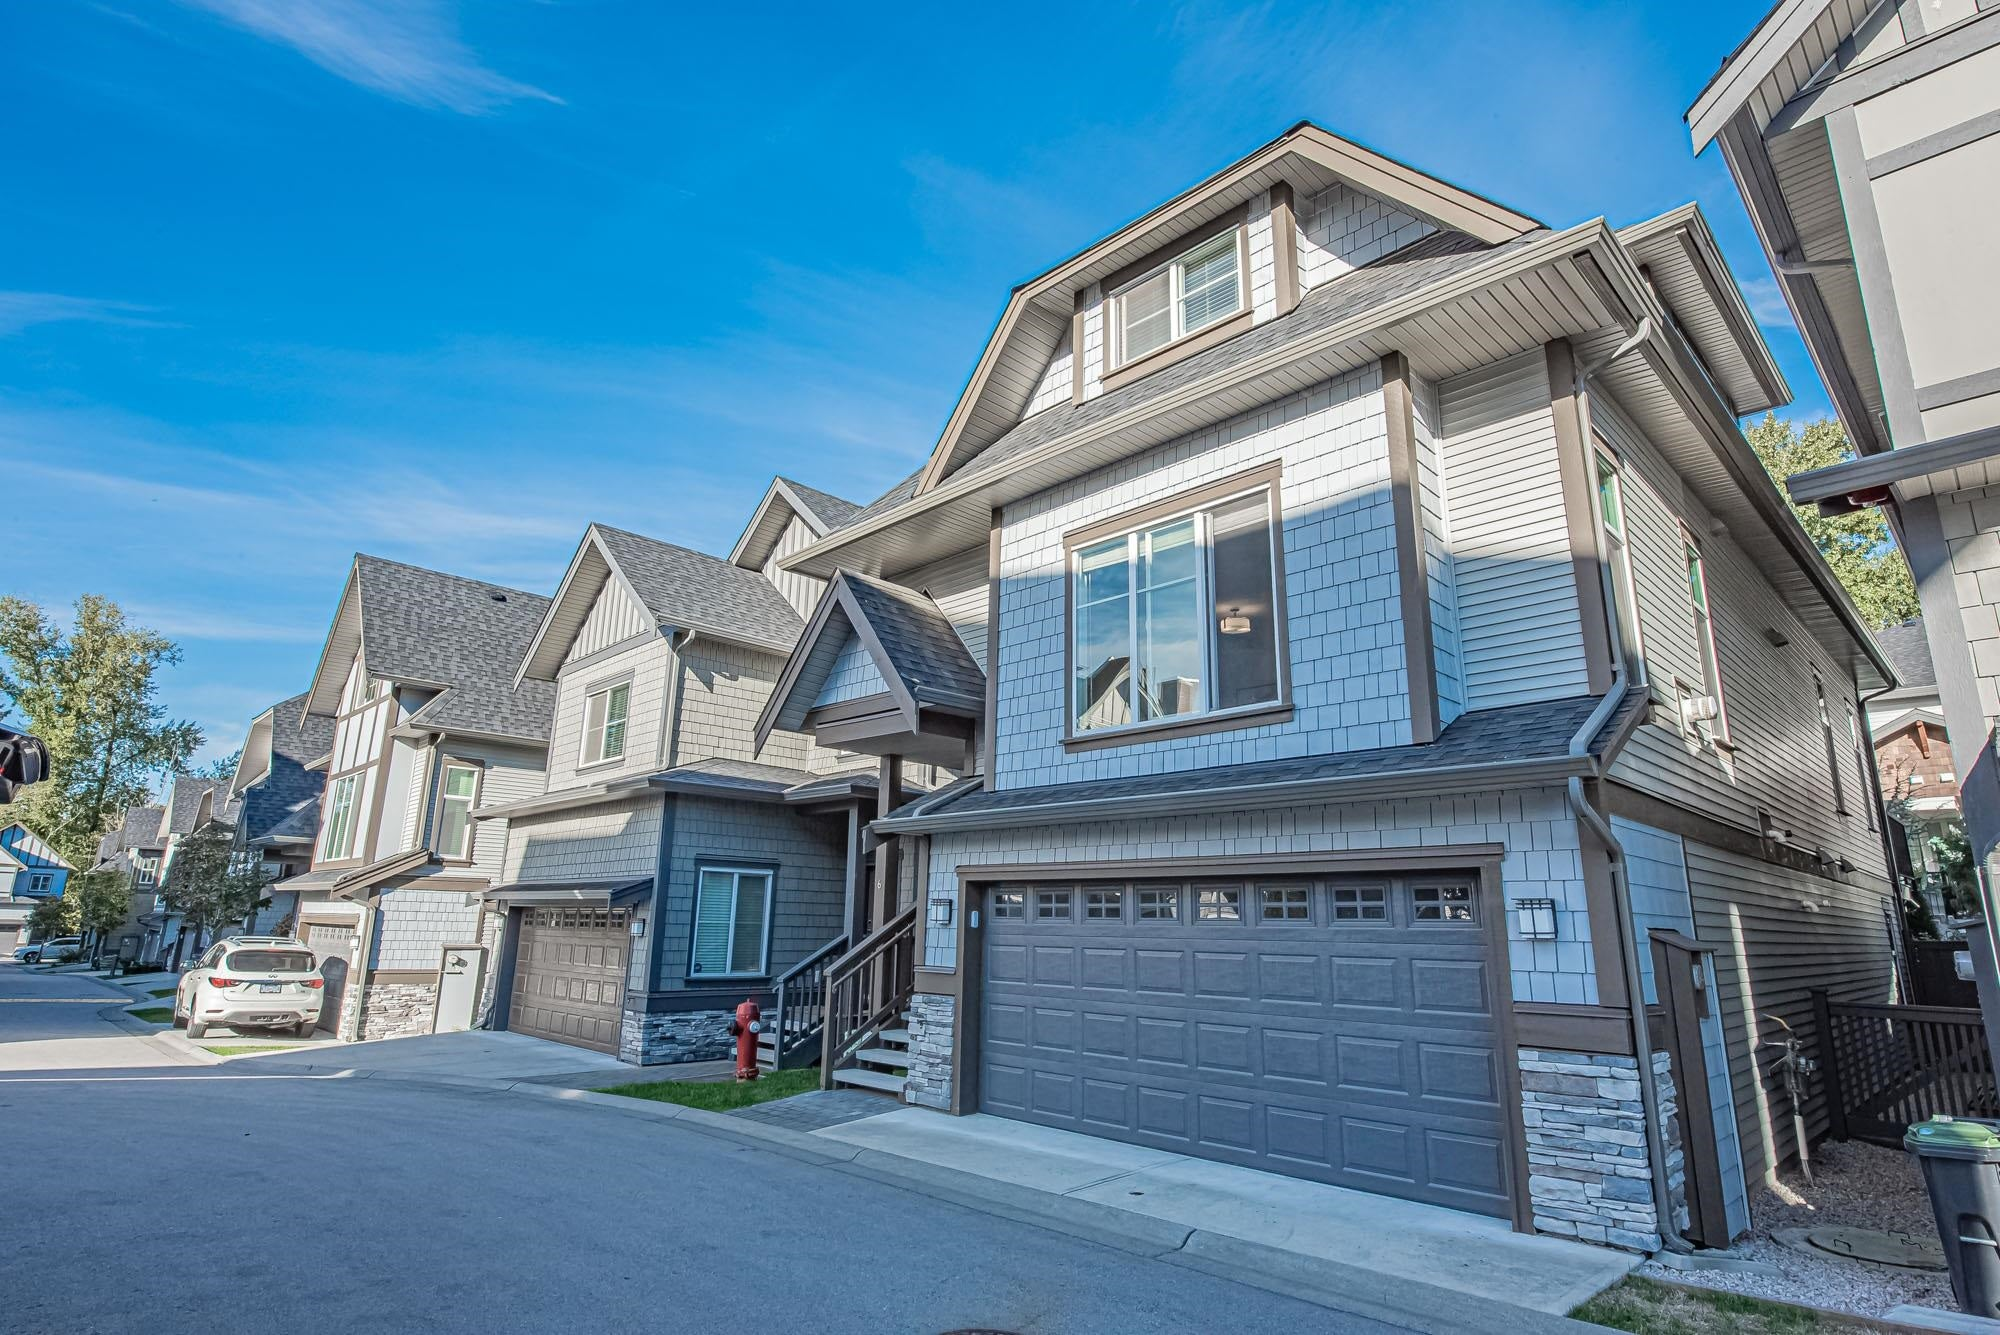 6 8217 204B STREET - Willoughby Heights Townhouse for sale, 5 Bedrooms (R2619989) - #1